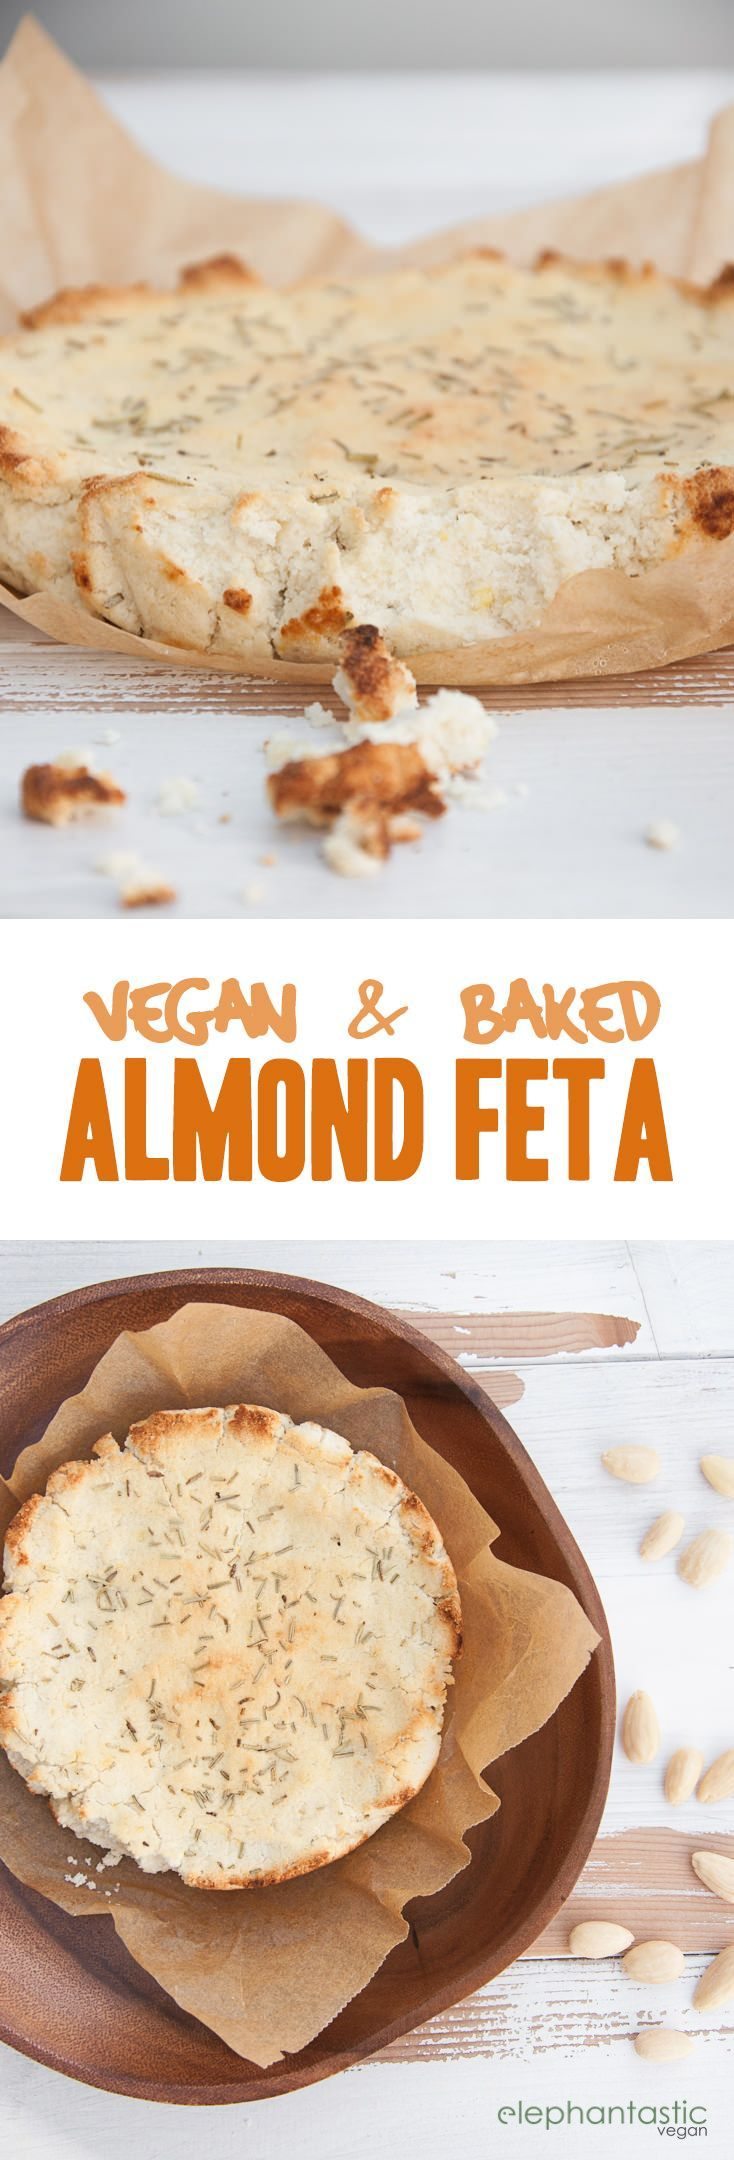 Baked Almond Feta with Rosemary | ElephantasticVegan.com